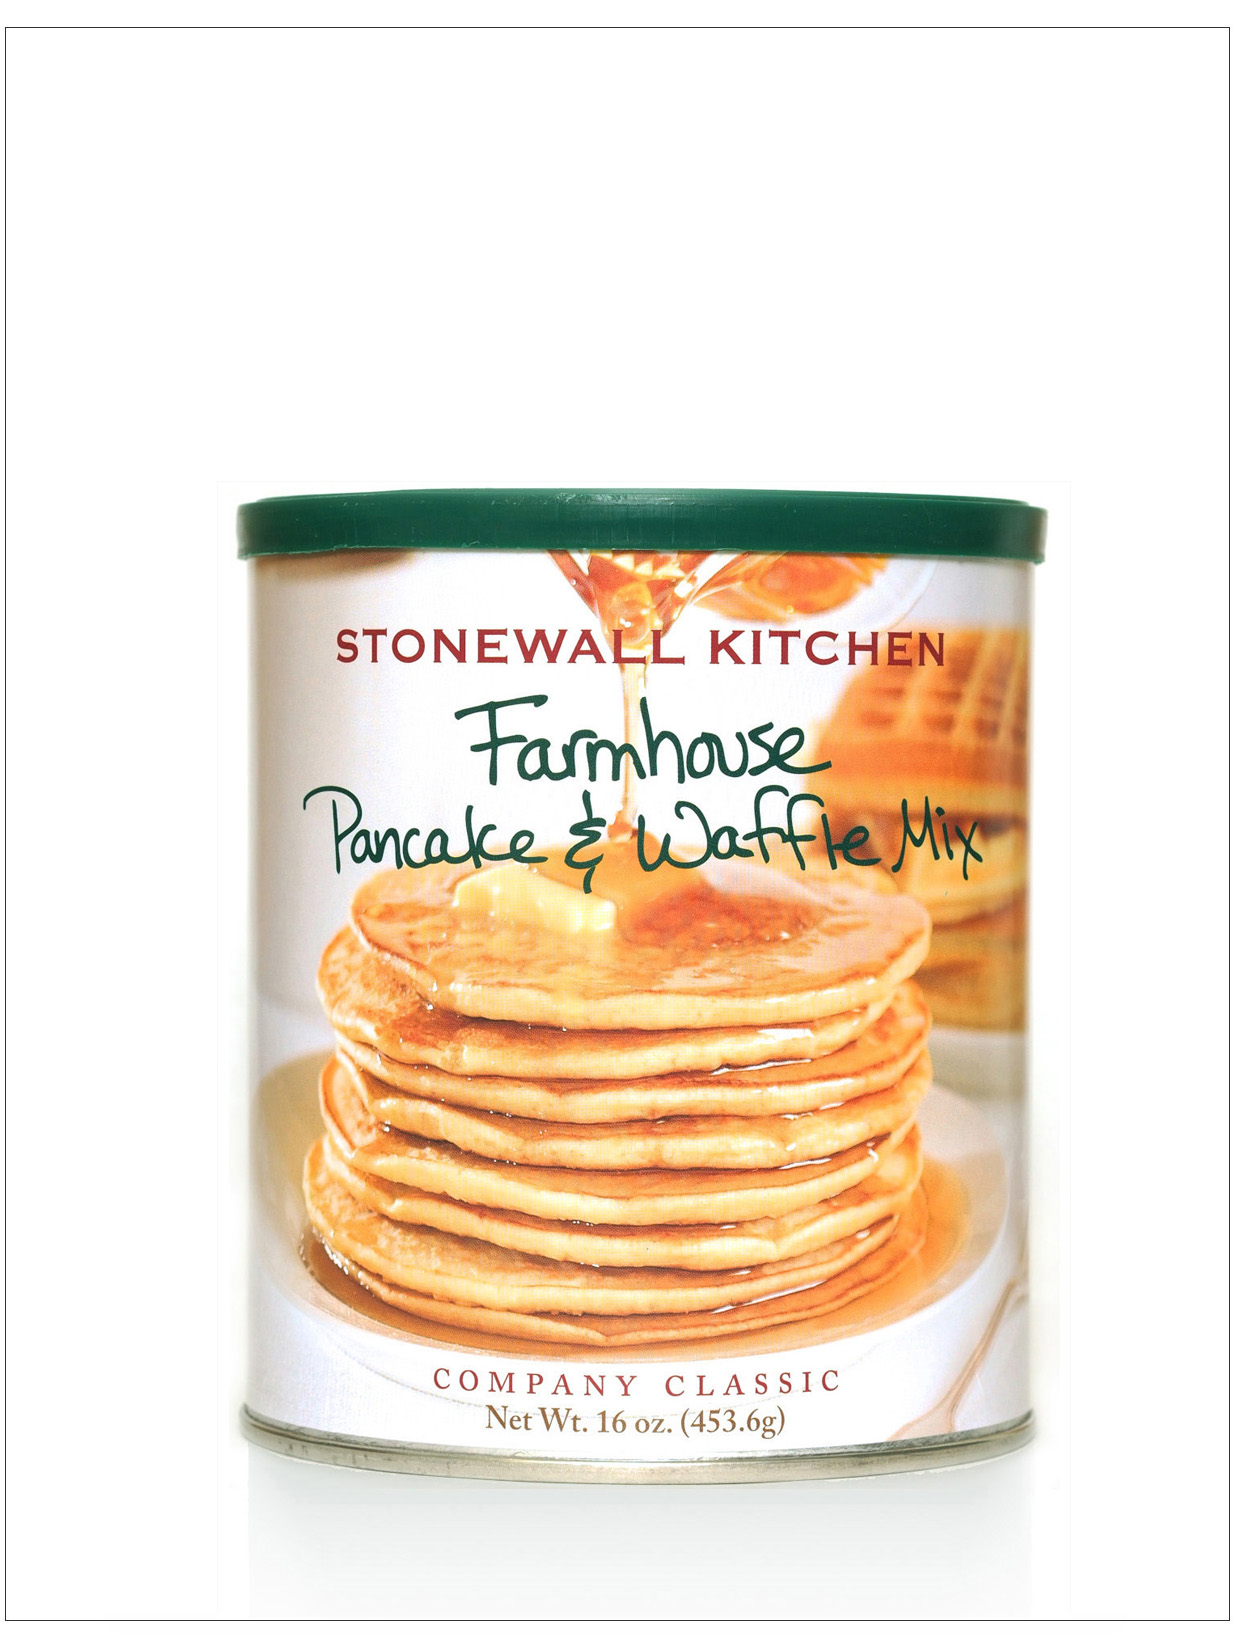 Stonewall Kitchen Pancake Mix | Stonewall Kitchen Farmhouse Pancake Waffle Mix 16oz Say Cheese